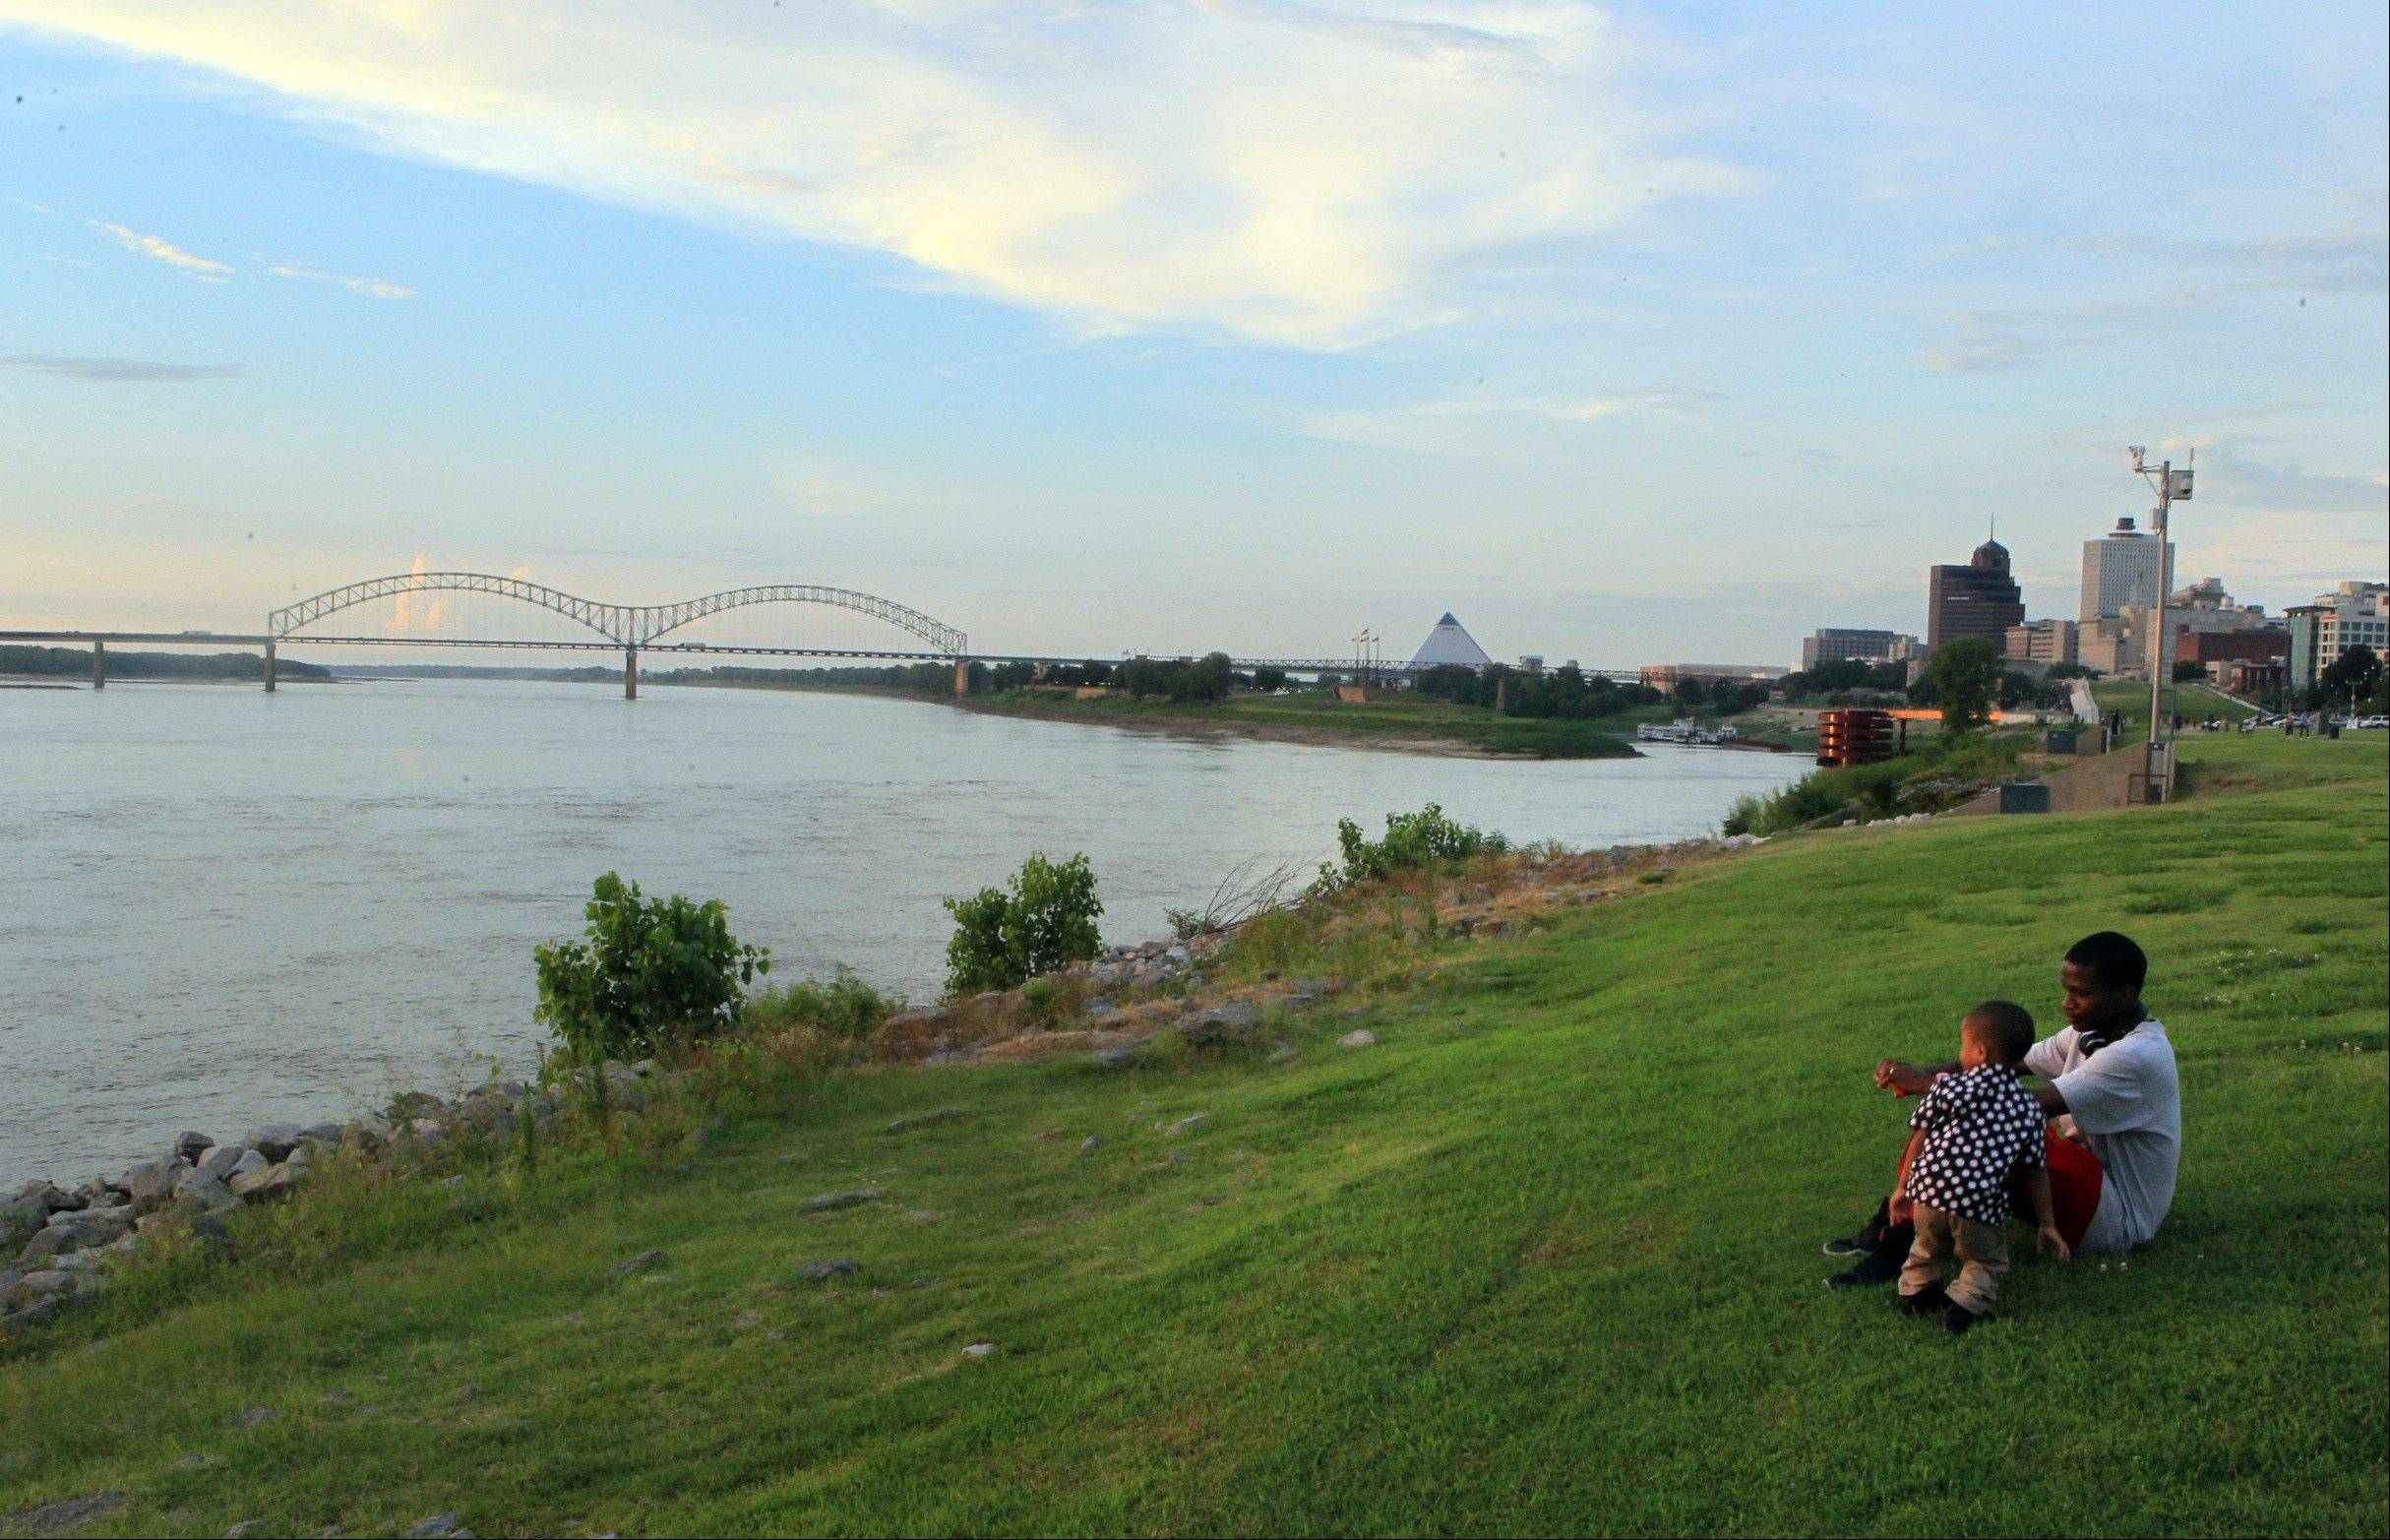 Marcus Milam, right, and his son Markes Milam, 3, sit along the banks of the Mississippi River in Tom Lee Park in Memphis, Tenn.